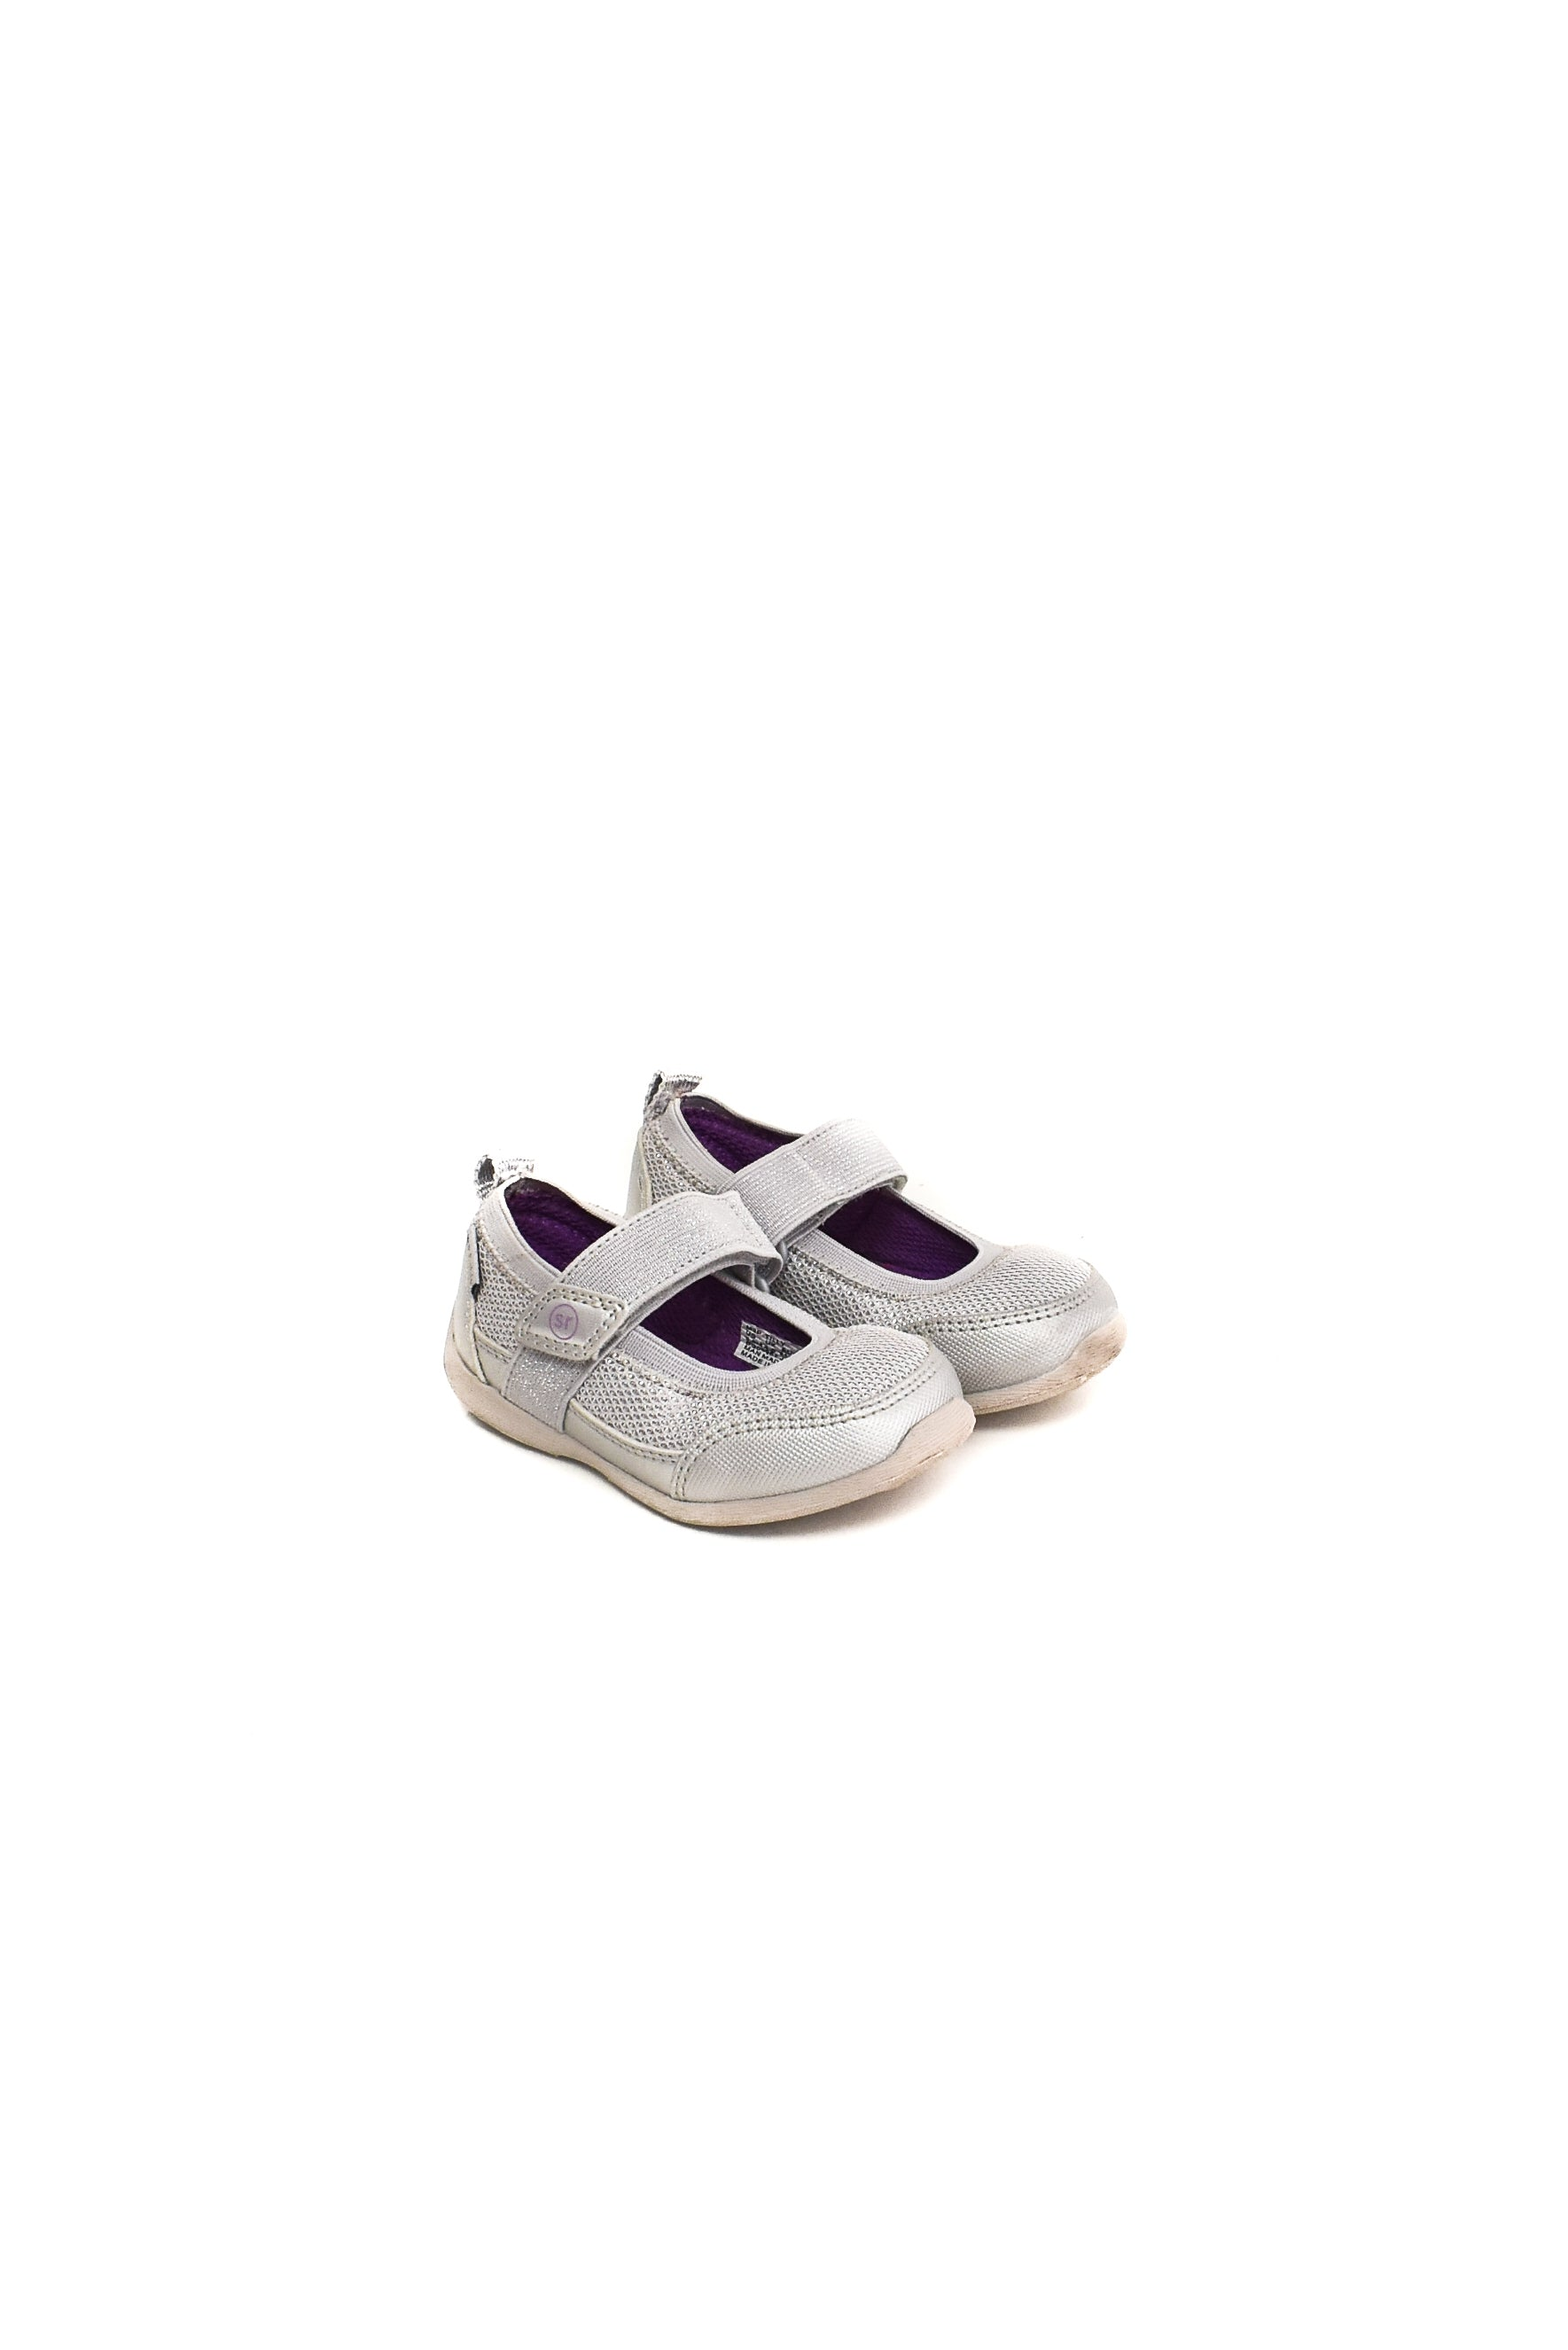 10007616 Stride Rite Baby~Shoes 12-18M (US 5.5) at Retykle